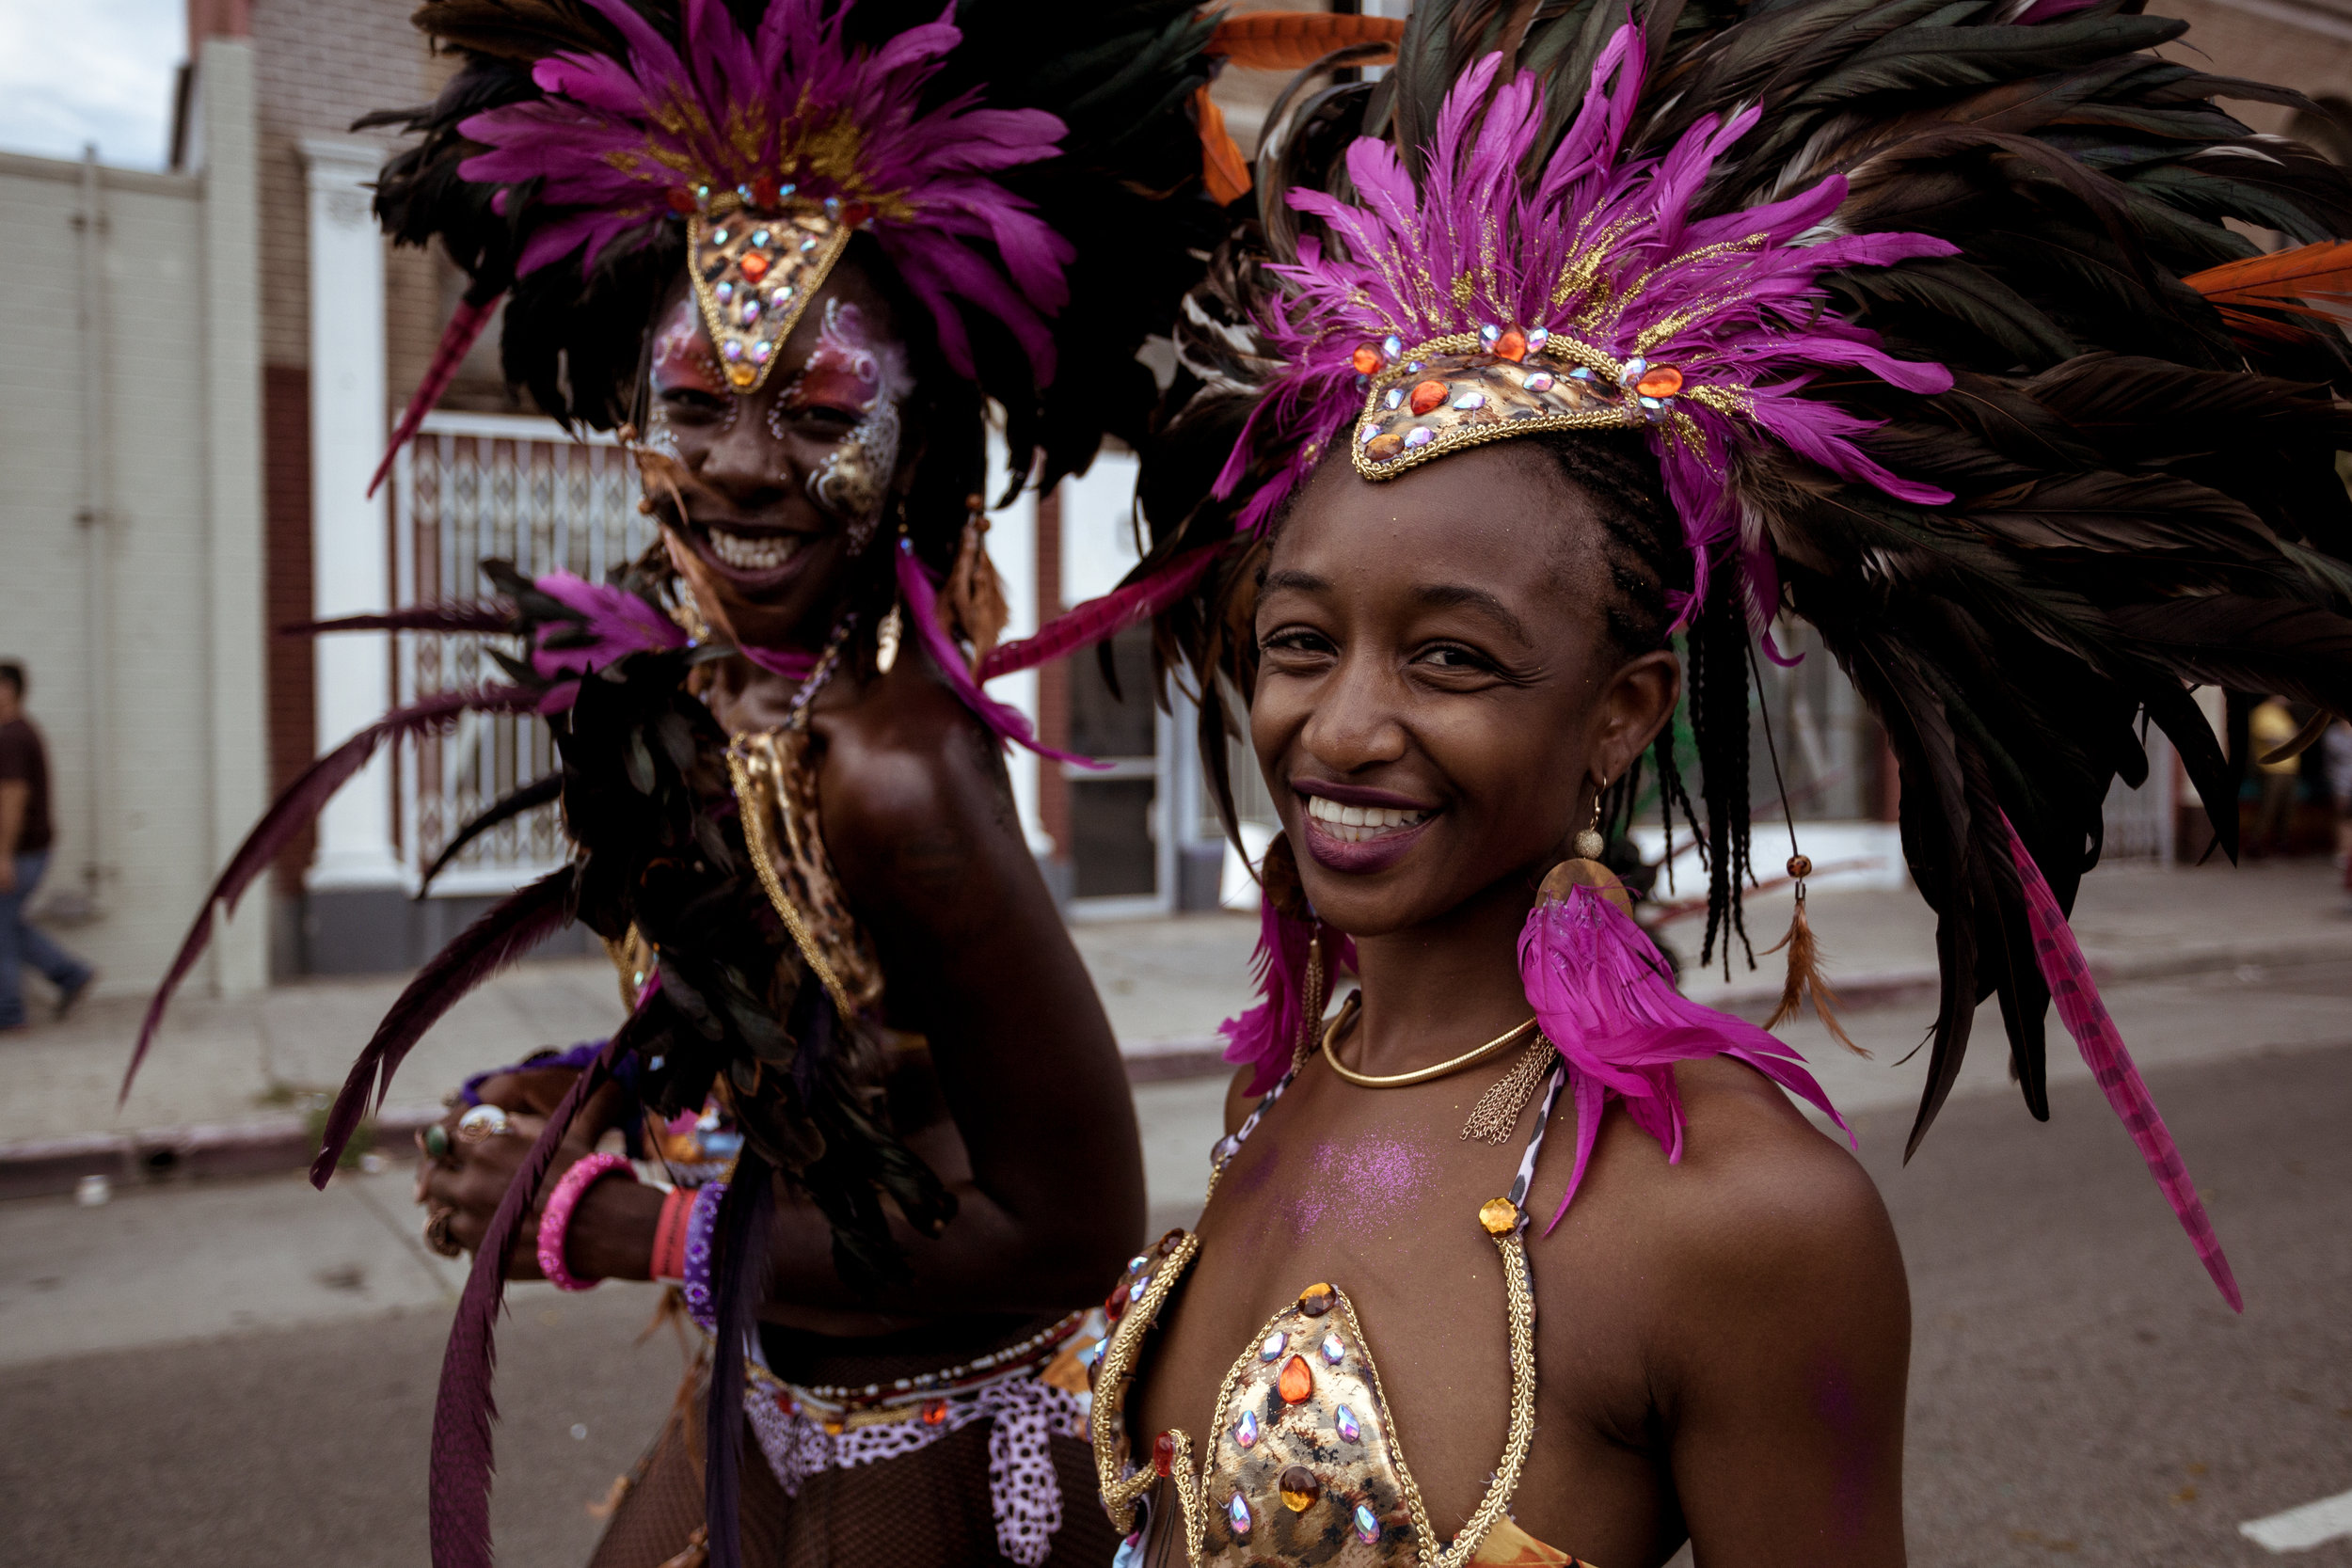 Chacon Images_Carnaval_Print-5758.jpg